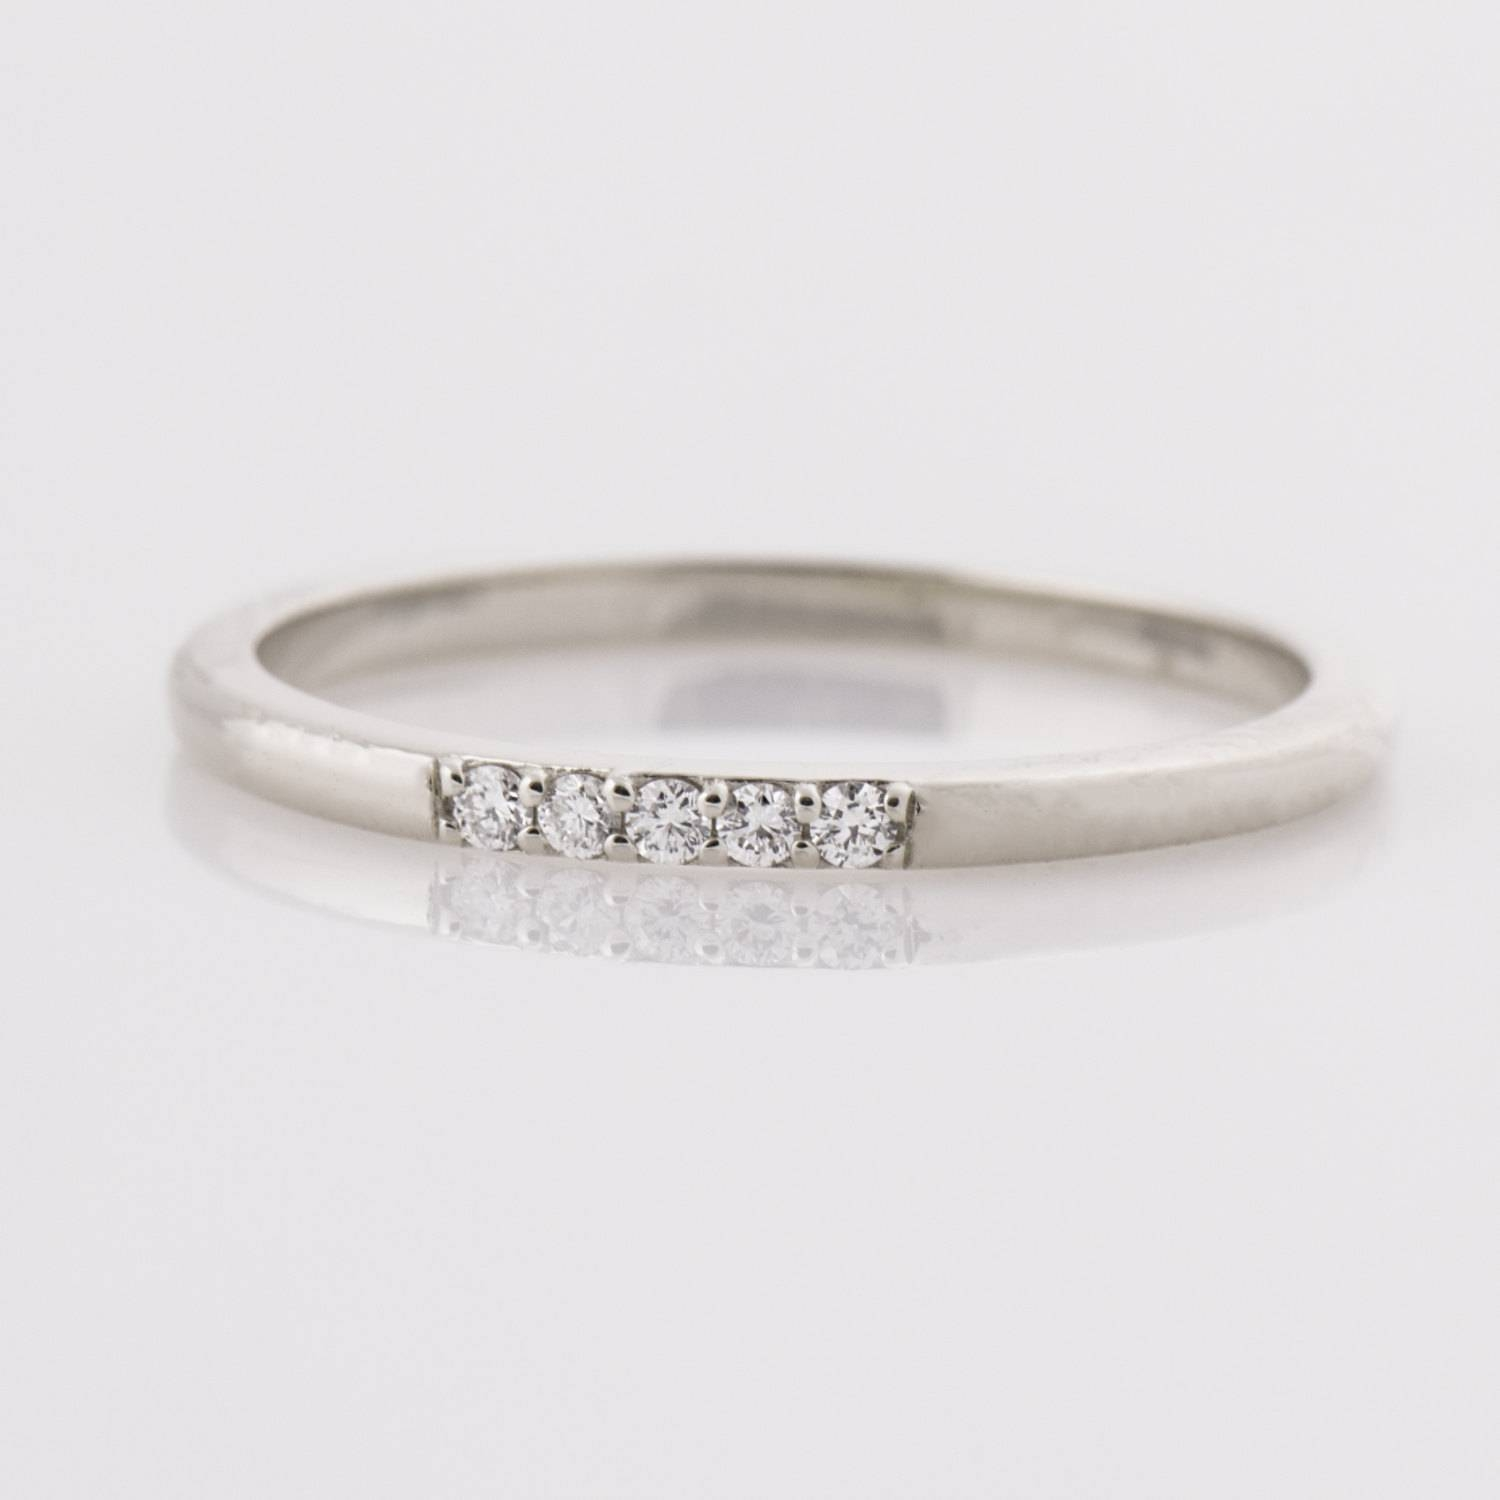 Thin Diamond Ring 14K White Gold Stacking Ring Dainty Intended For Thin Wedding Bands With Diamonds (View 10 of 15)